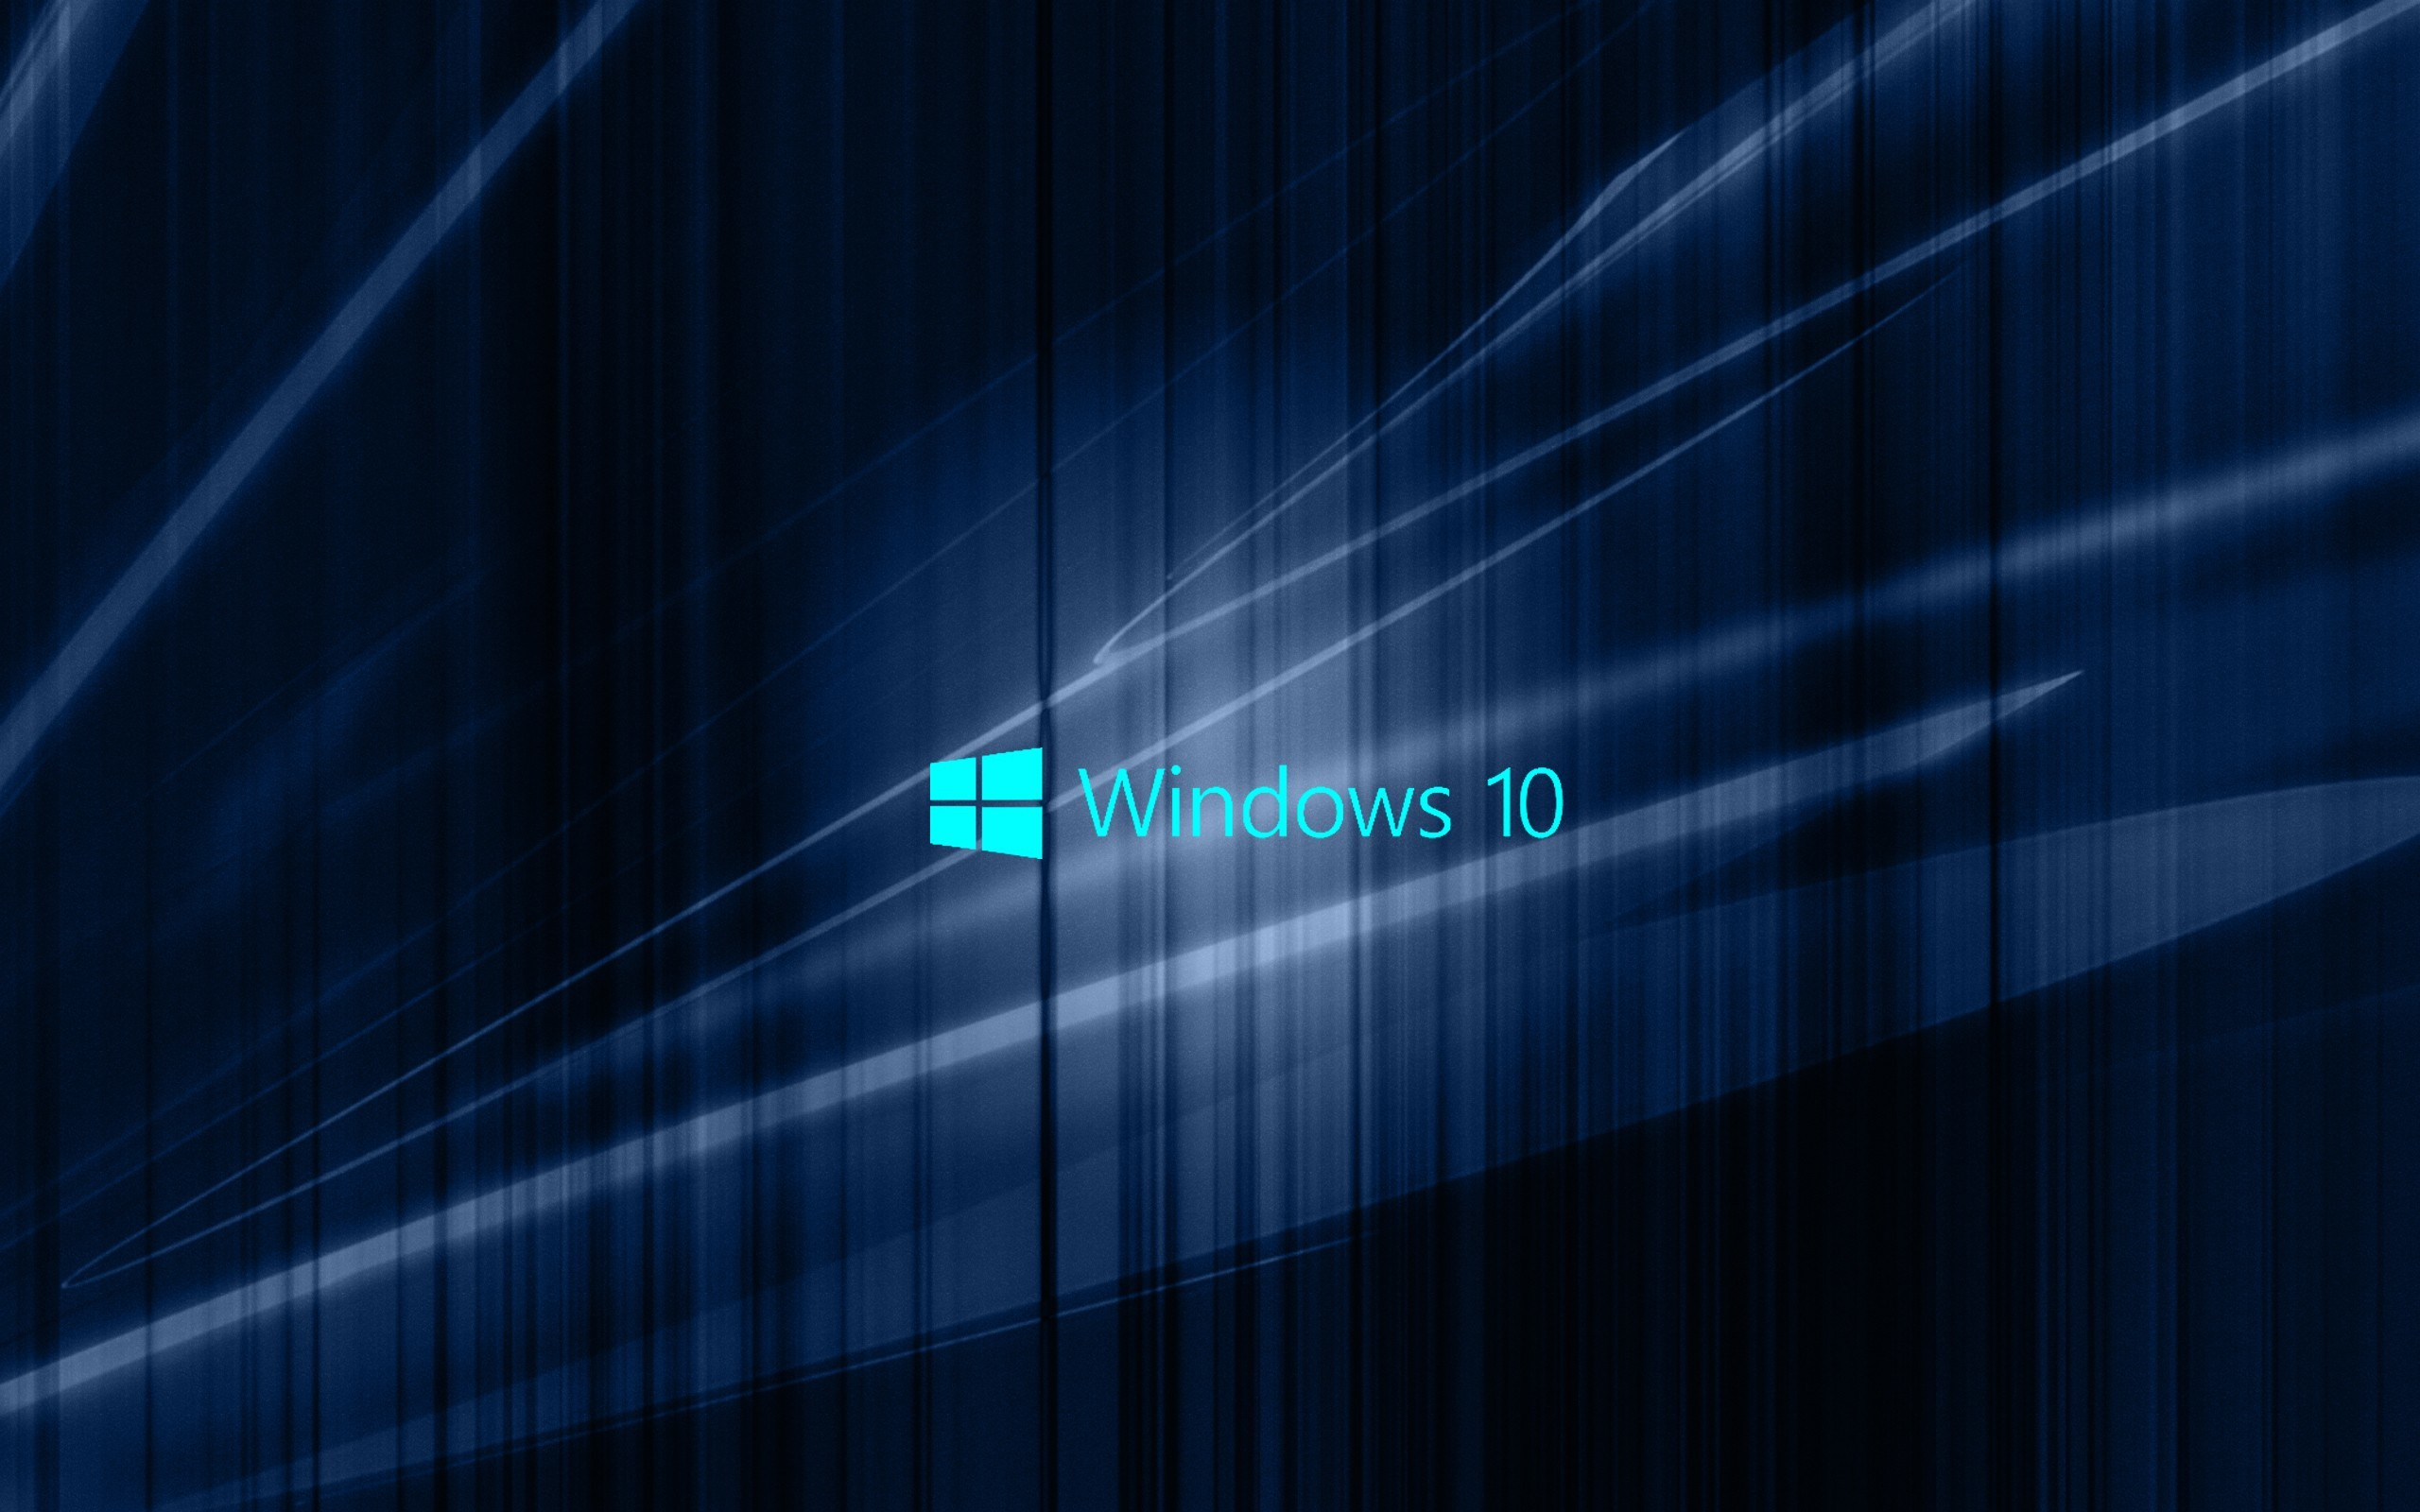 2560x1600 windows 10 1080p wallpapers #142622